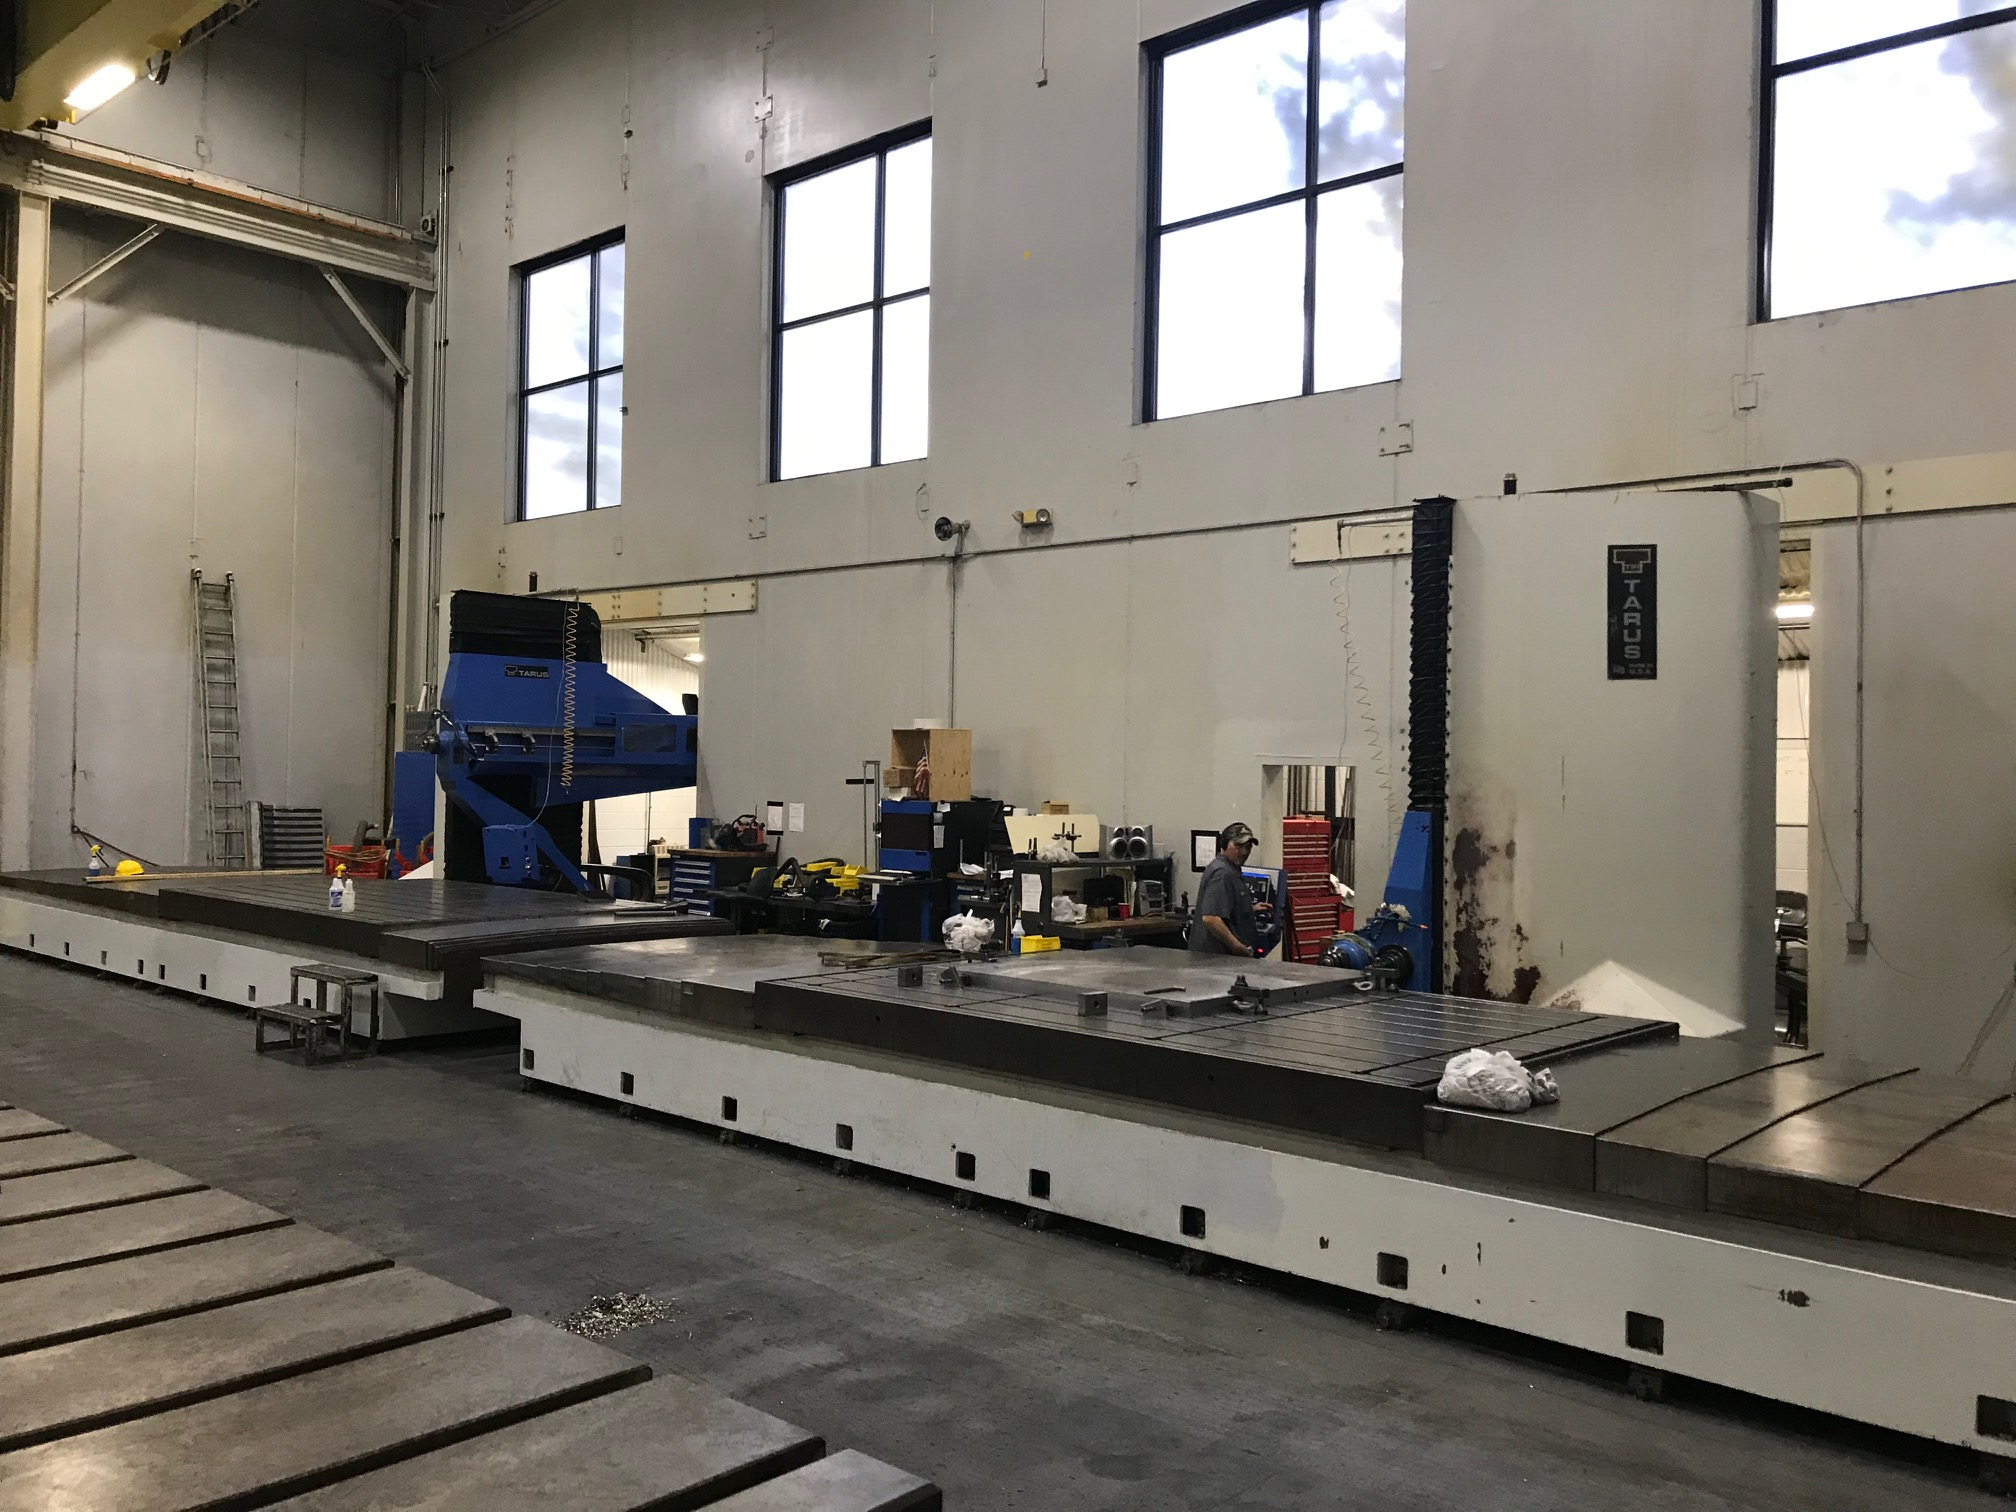 TARUS MODEL TPTCGD512S, 4-AXIS Dual CNC Gun Drilling System (sharing a Centralized Coolant System)